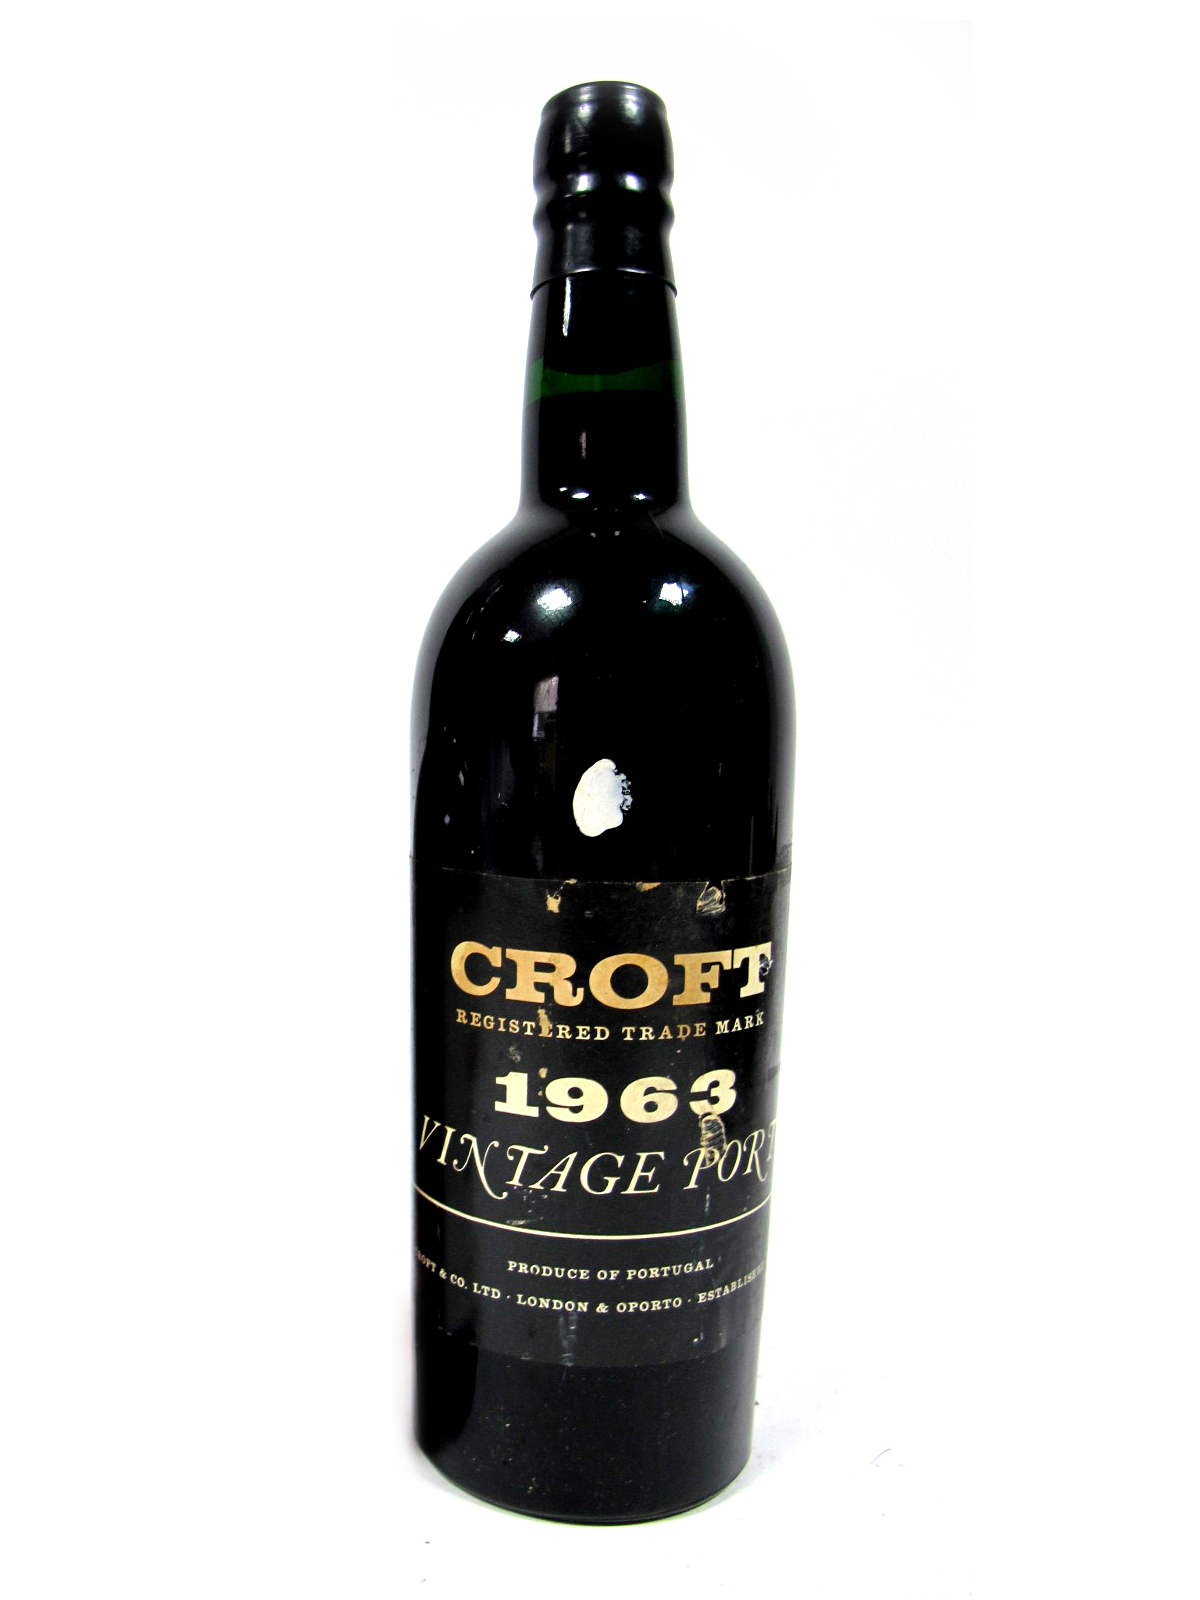 Lot 28 - Port - Croft 1963 Vintage Port.